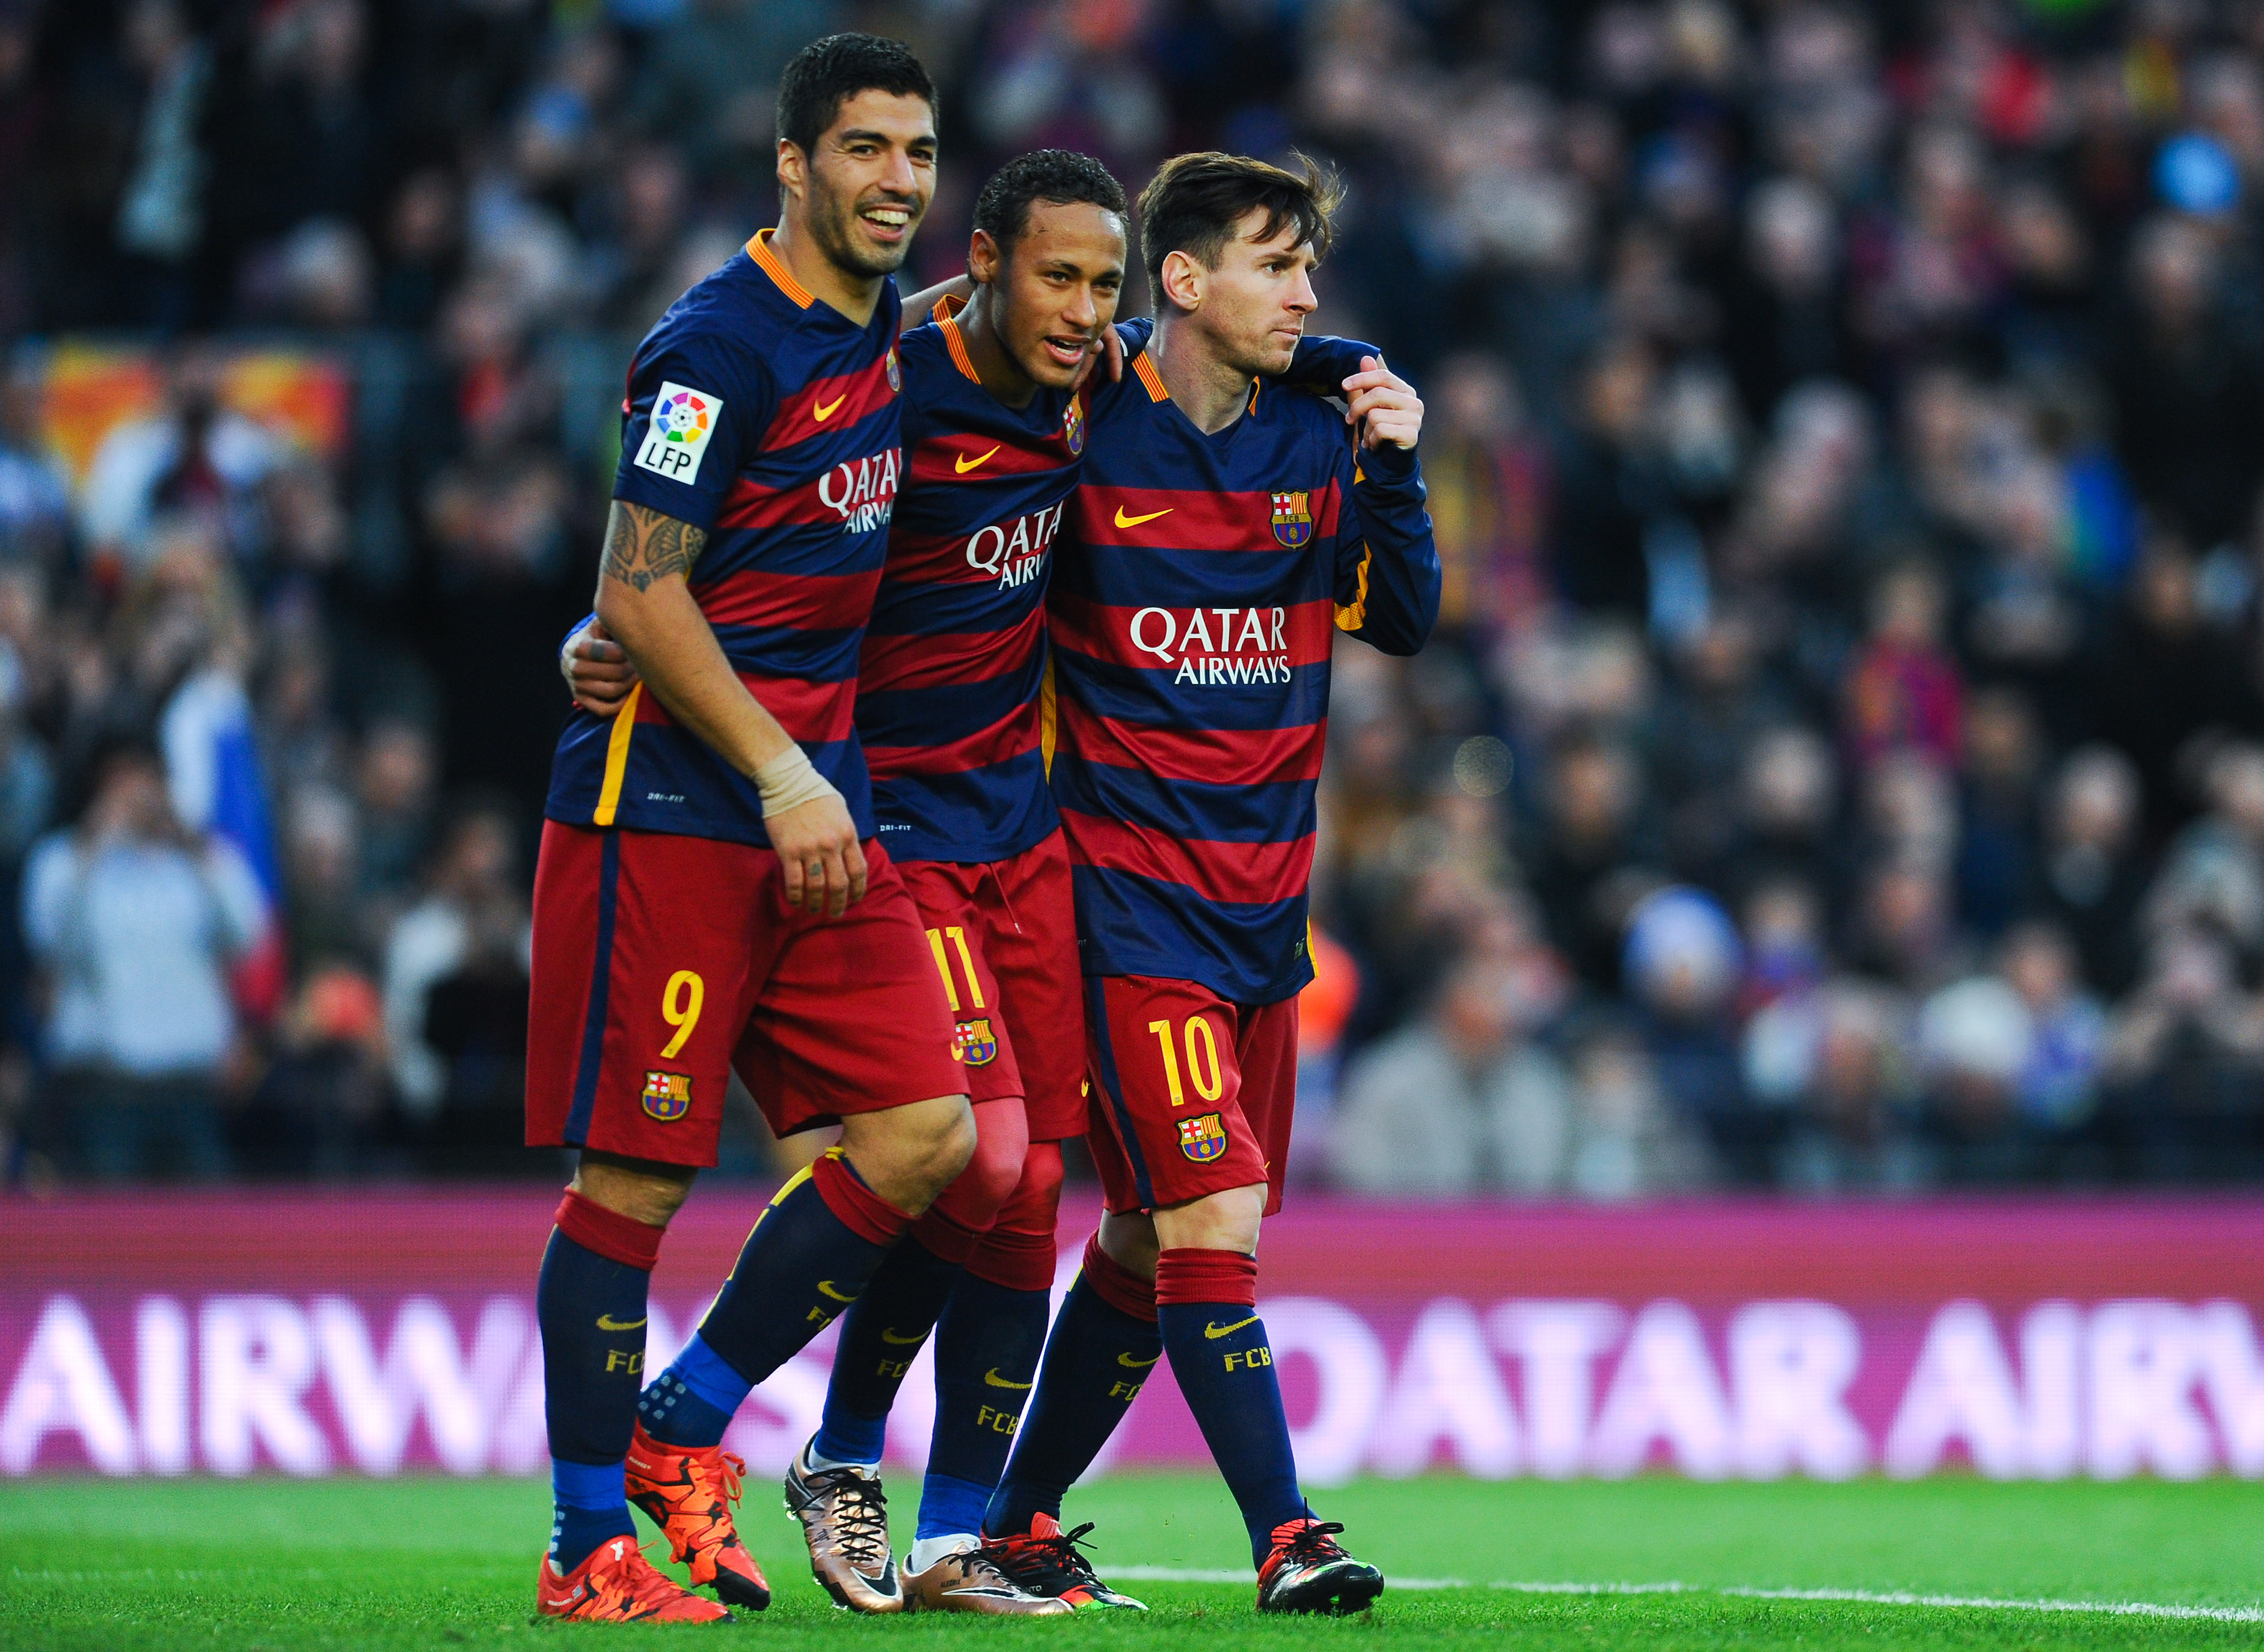 http://images.latinpost.com/data/images/full/84962/messi-neymar-suarez.jpg